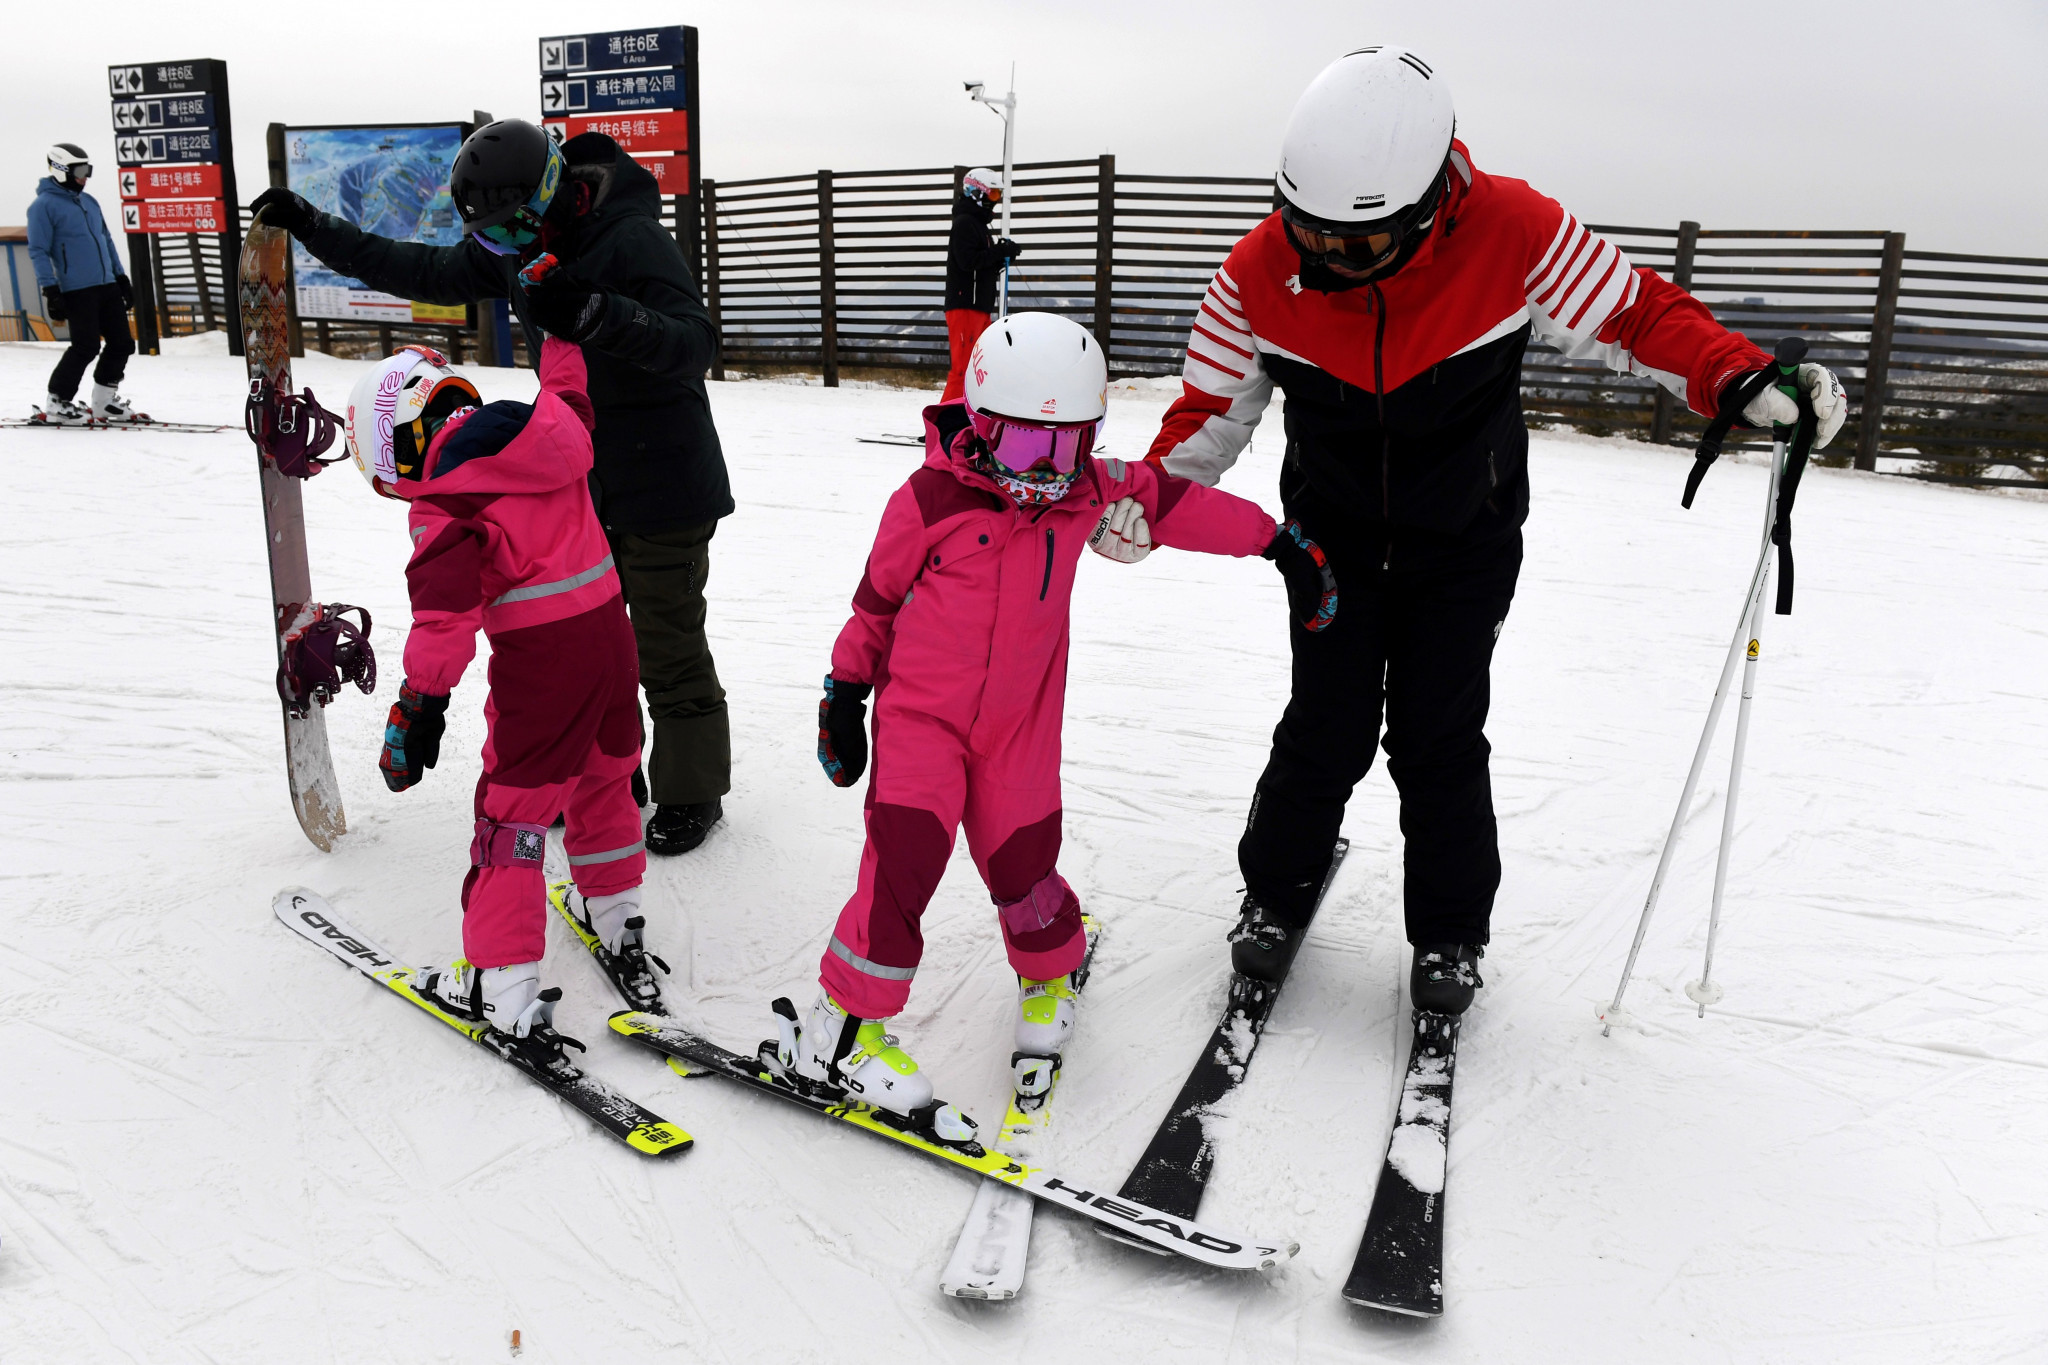 Ecole Française de Ski has opened a ski academy with Club Med to help capitalise on the opportunity offered by Beijing 2022 ©Getty Images